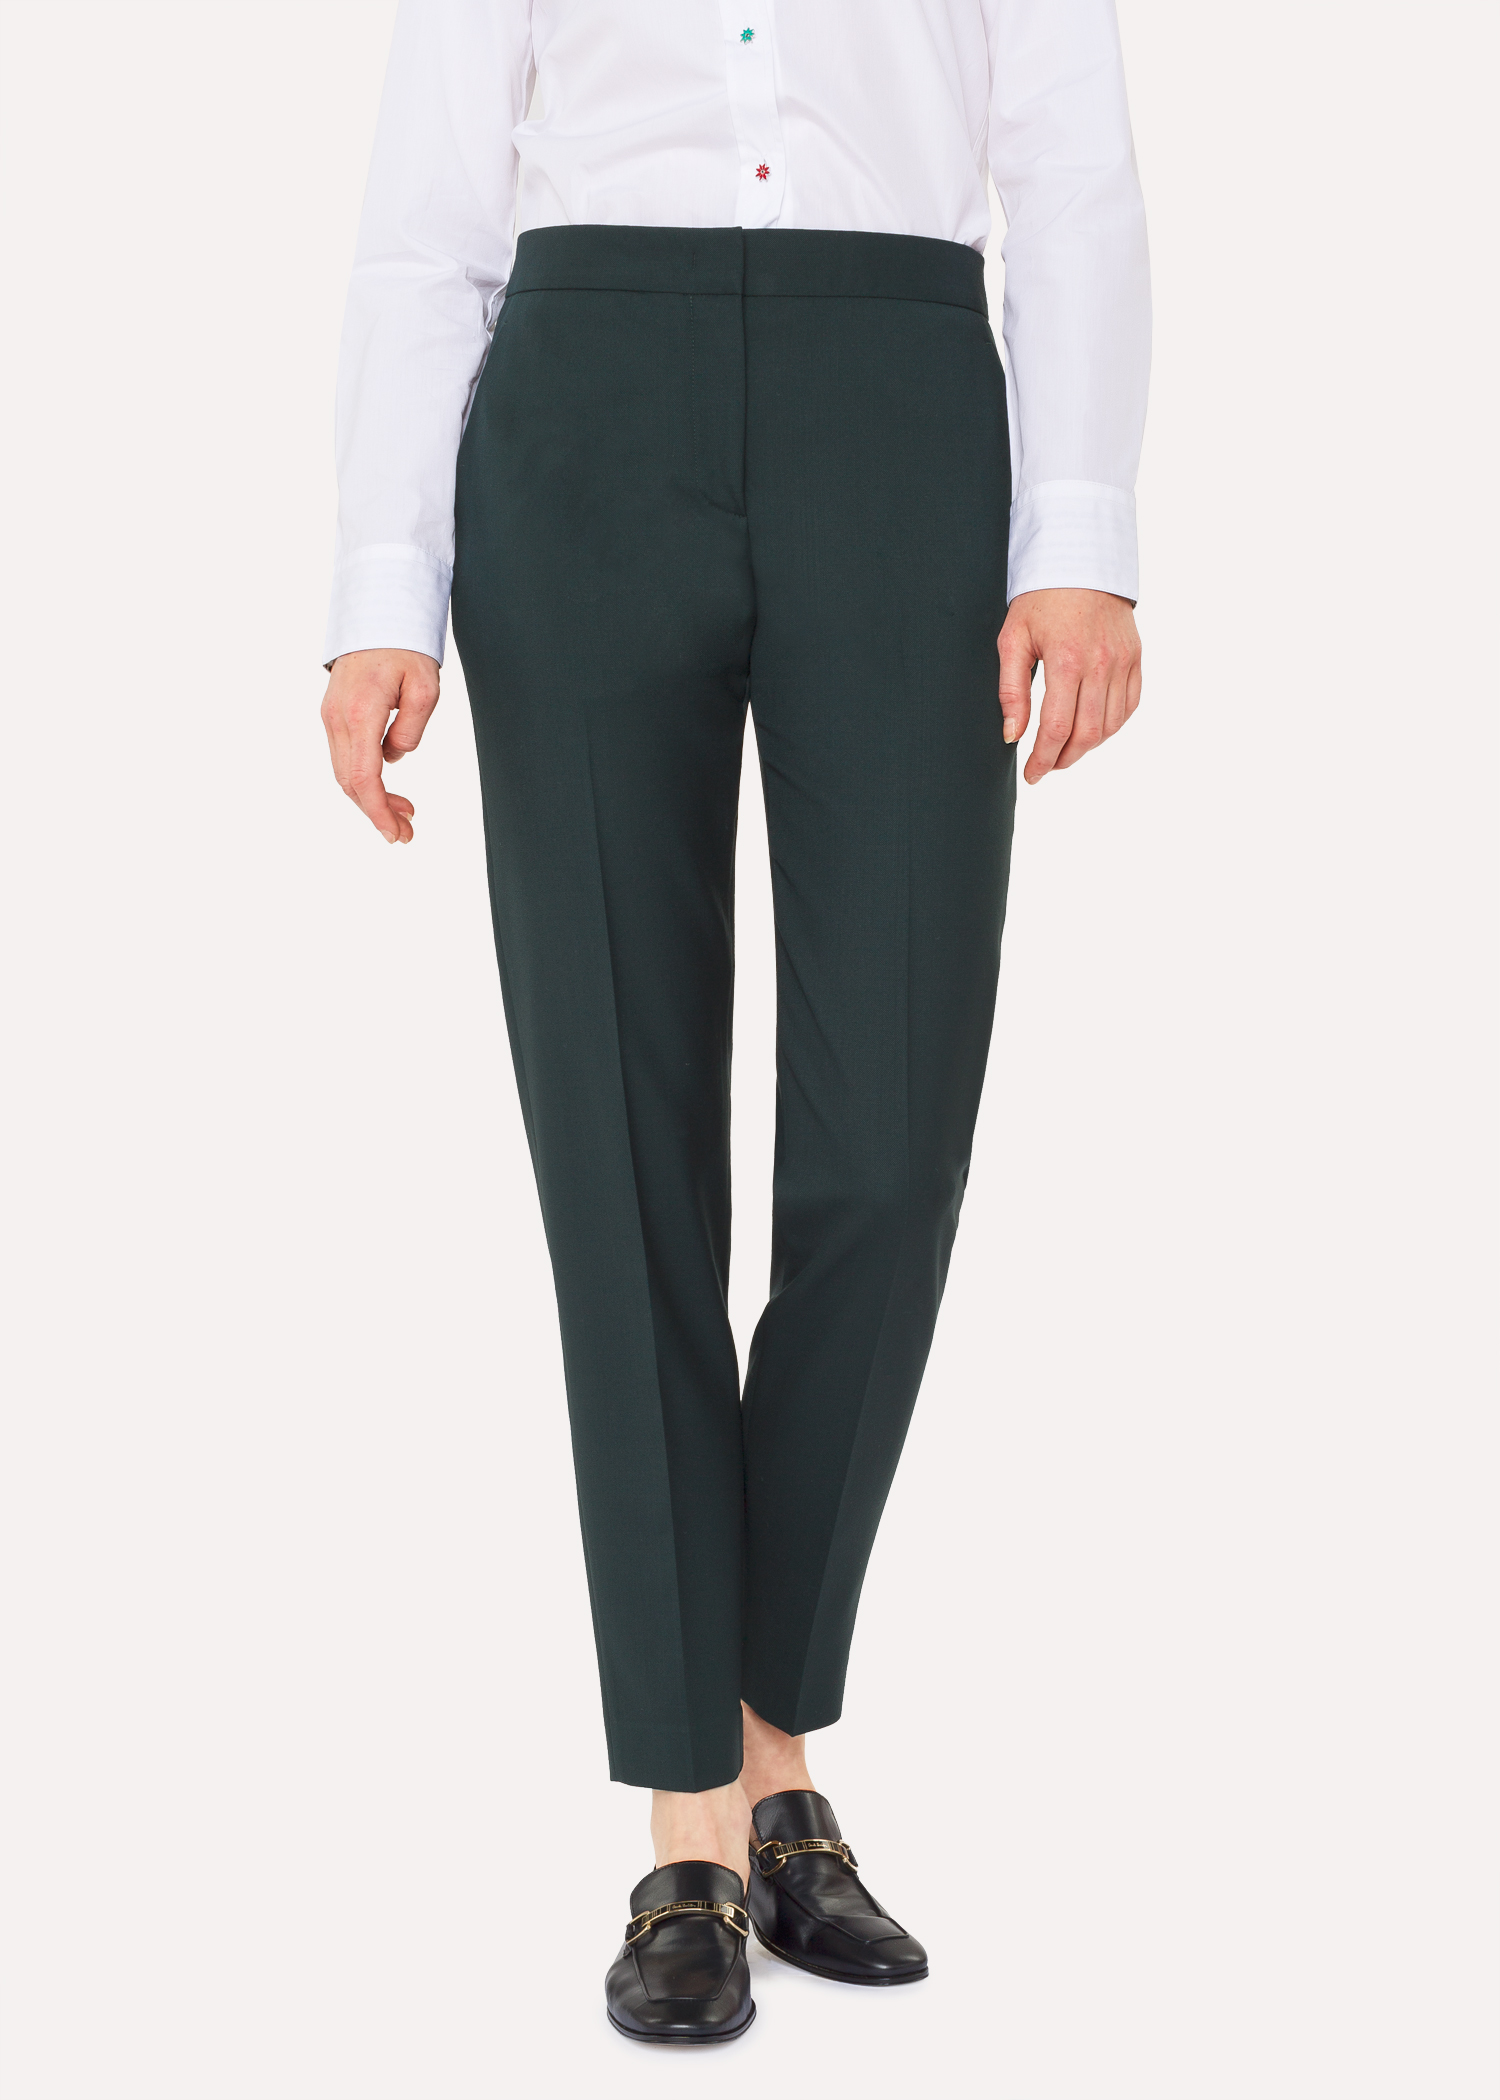 6a2ac971c113 A Suit To Travel In - Women s Classic-Fit Dark Green Wool Pants Paul Smith